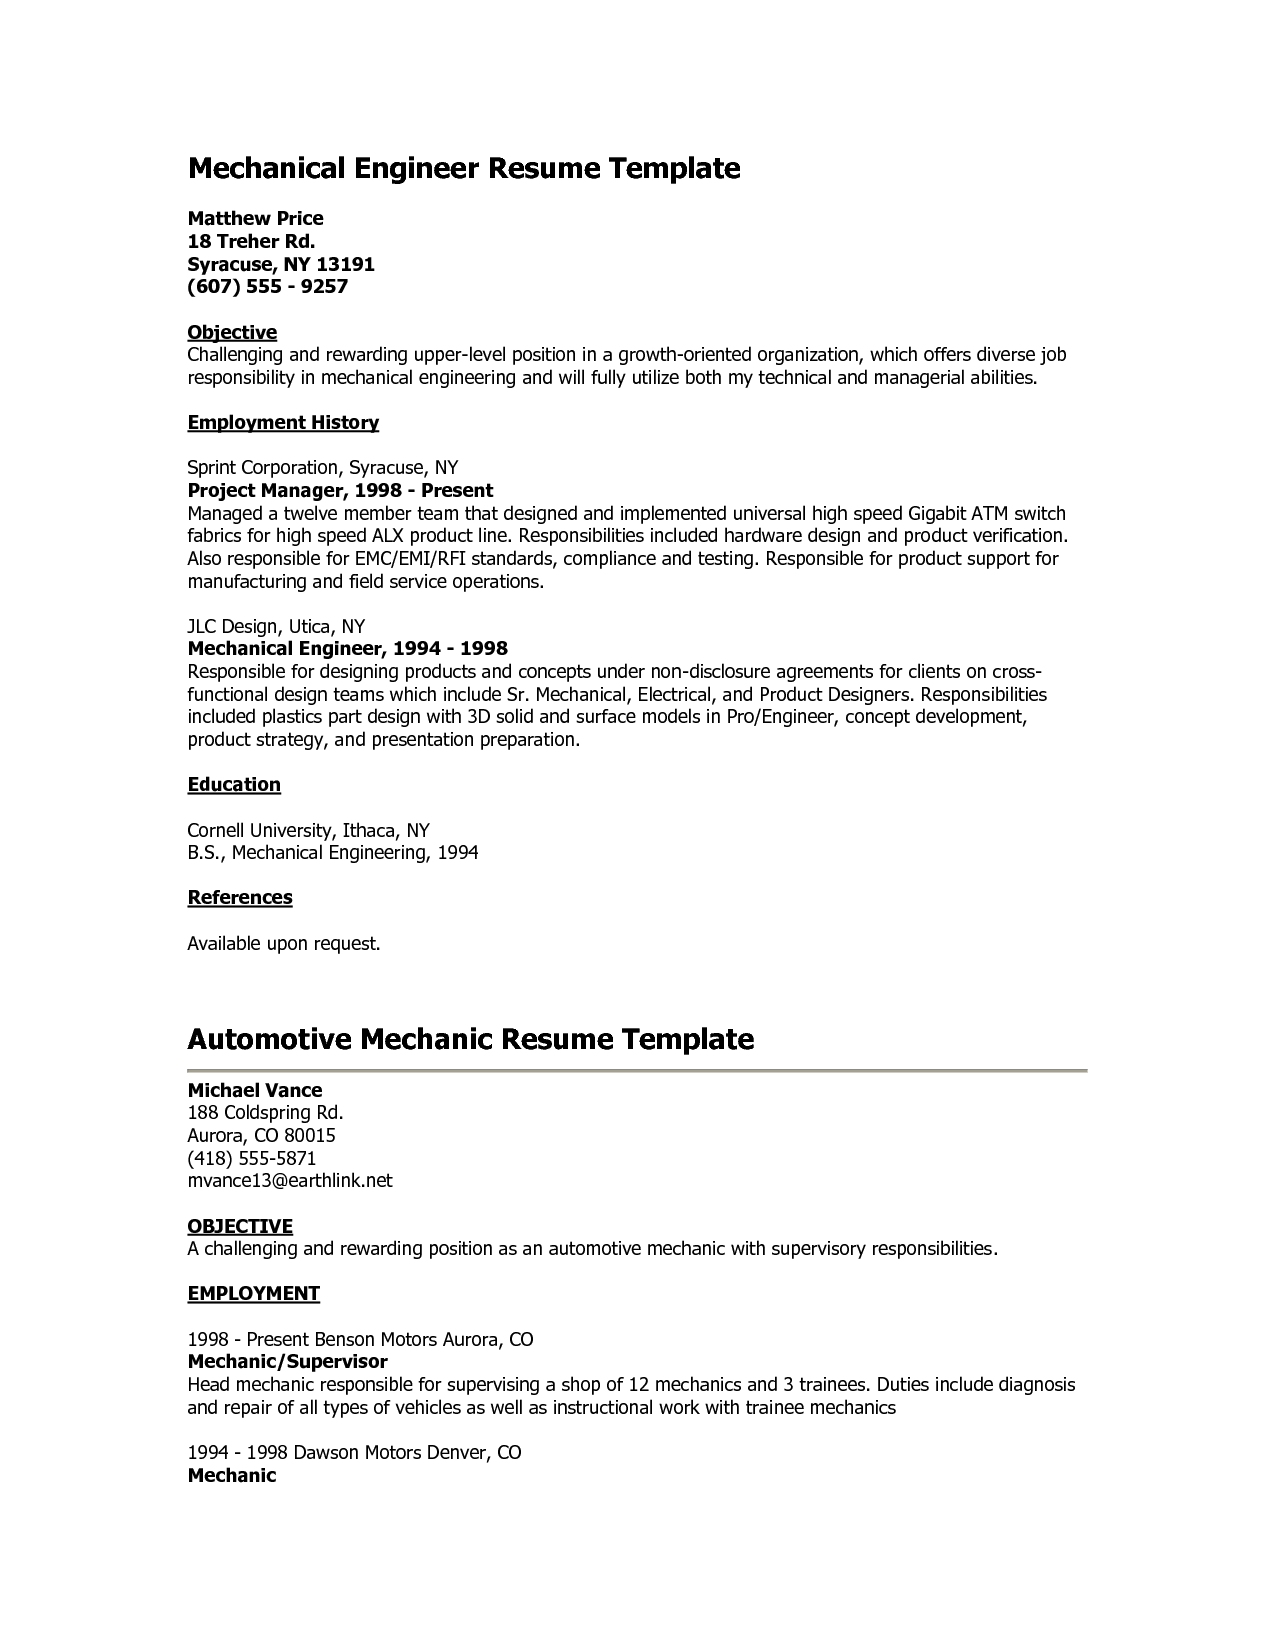 Bank Teller Resume With No Experience - http://www.jobresume.website ...